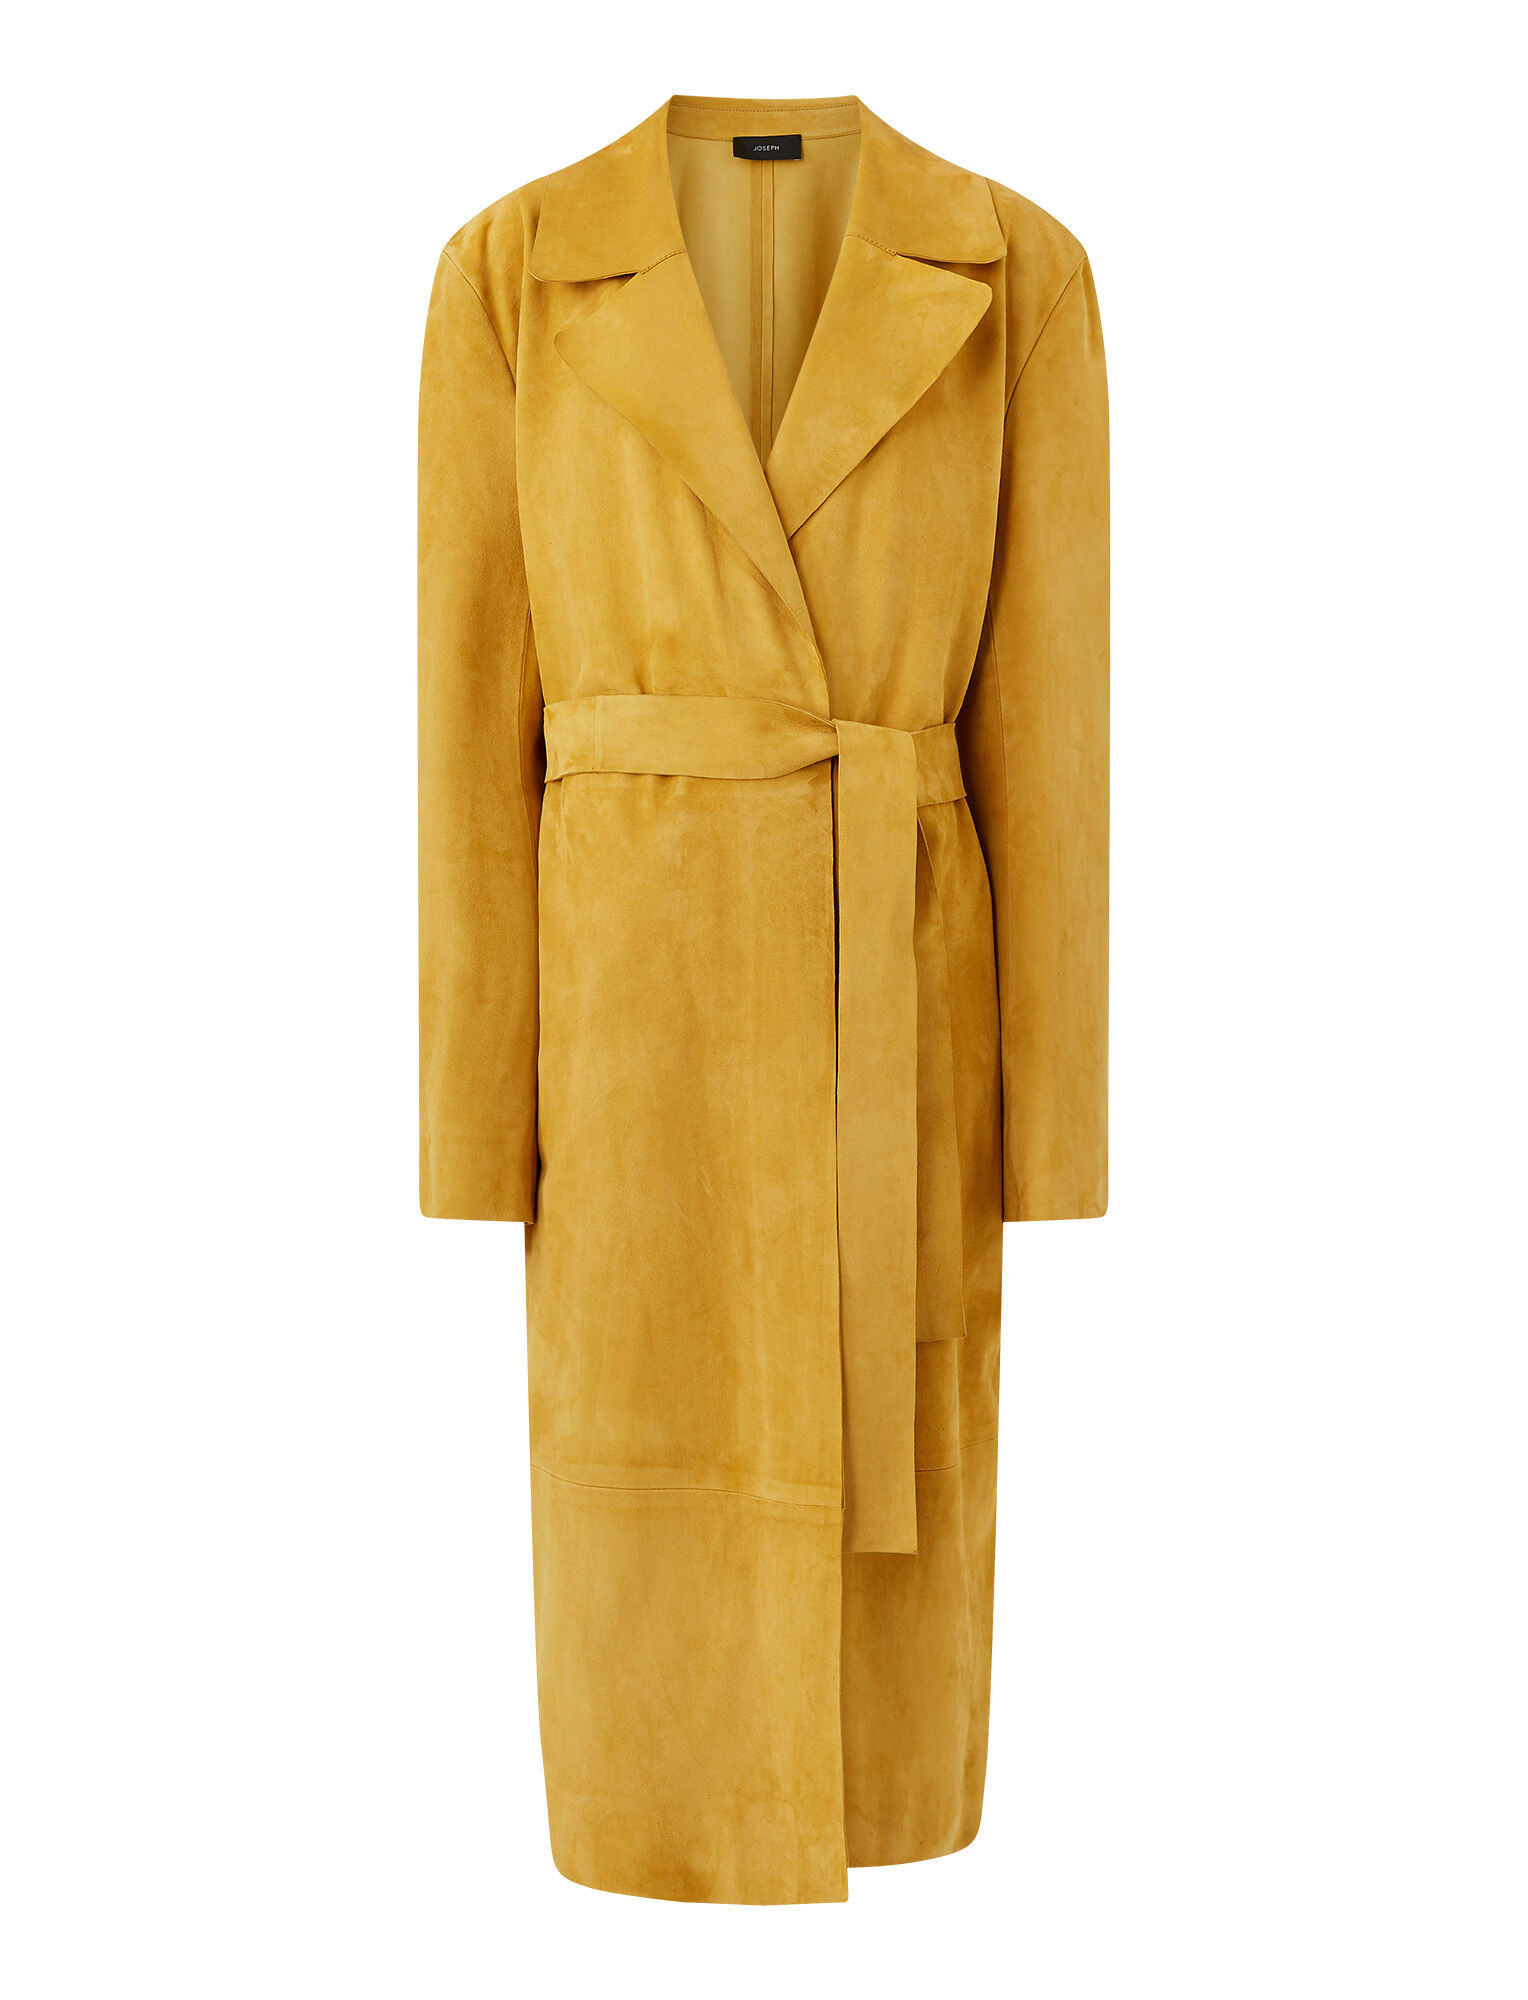 Joseph, Suede June Coat, in SAFFRON